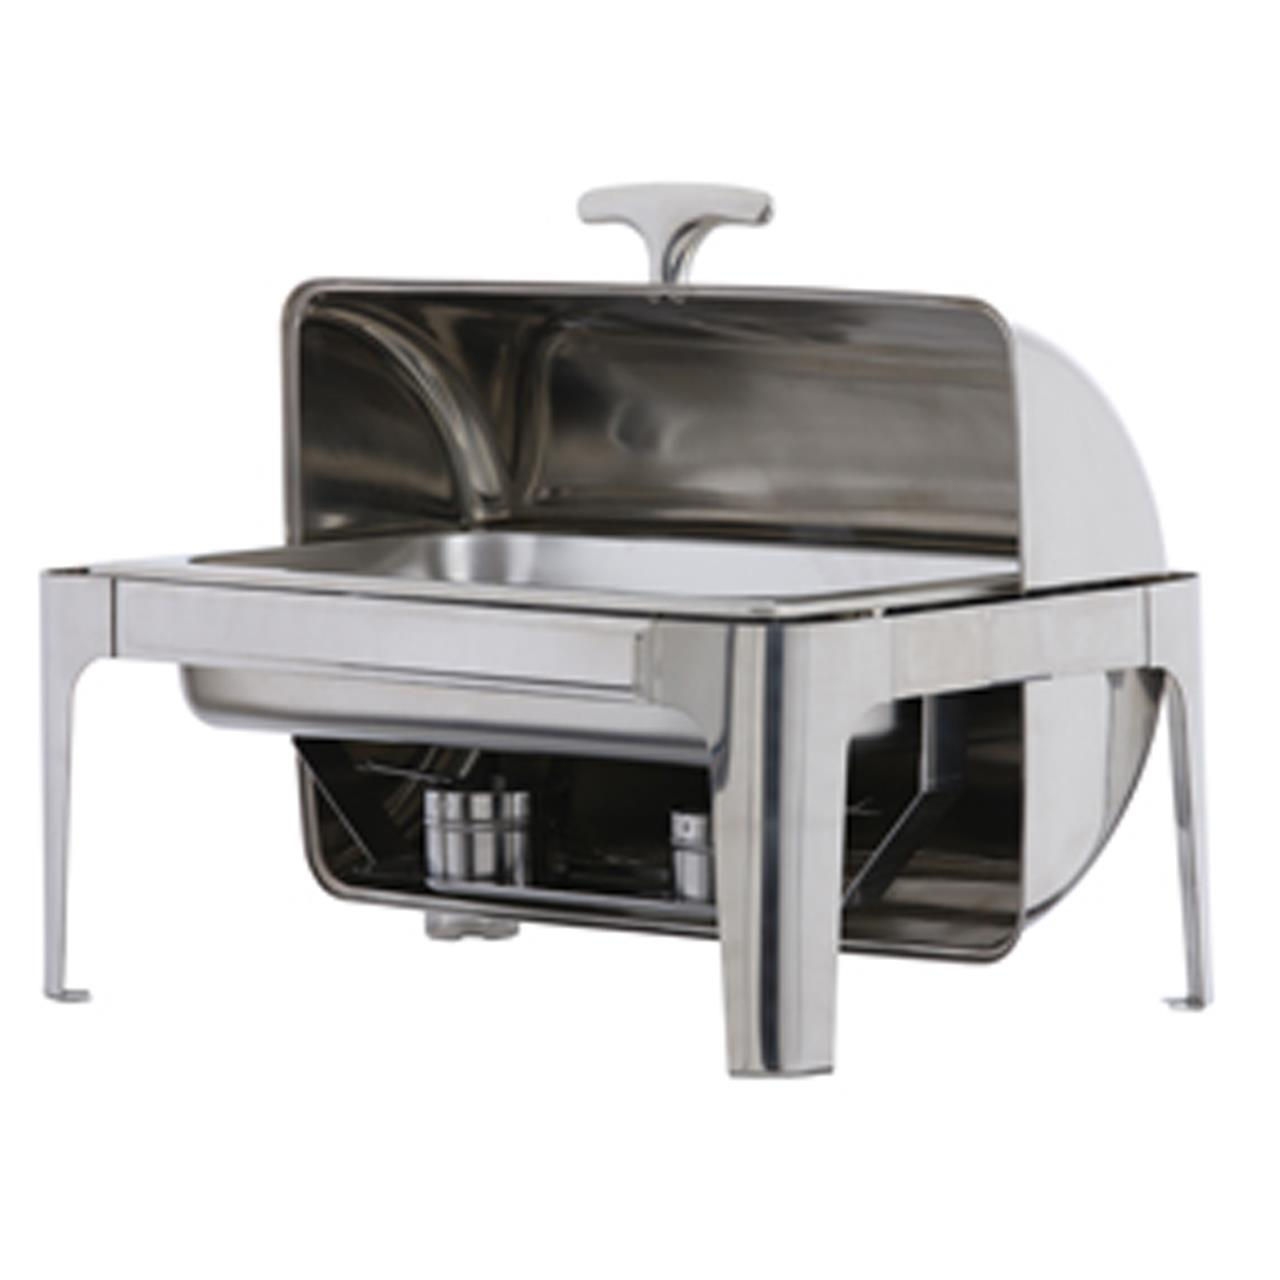 KH Roll Top Chafer